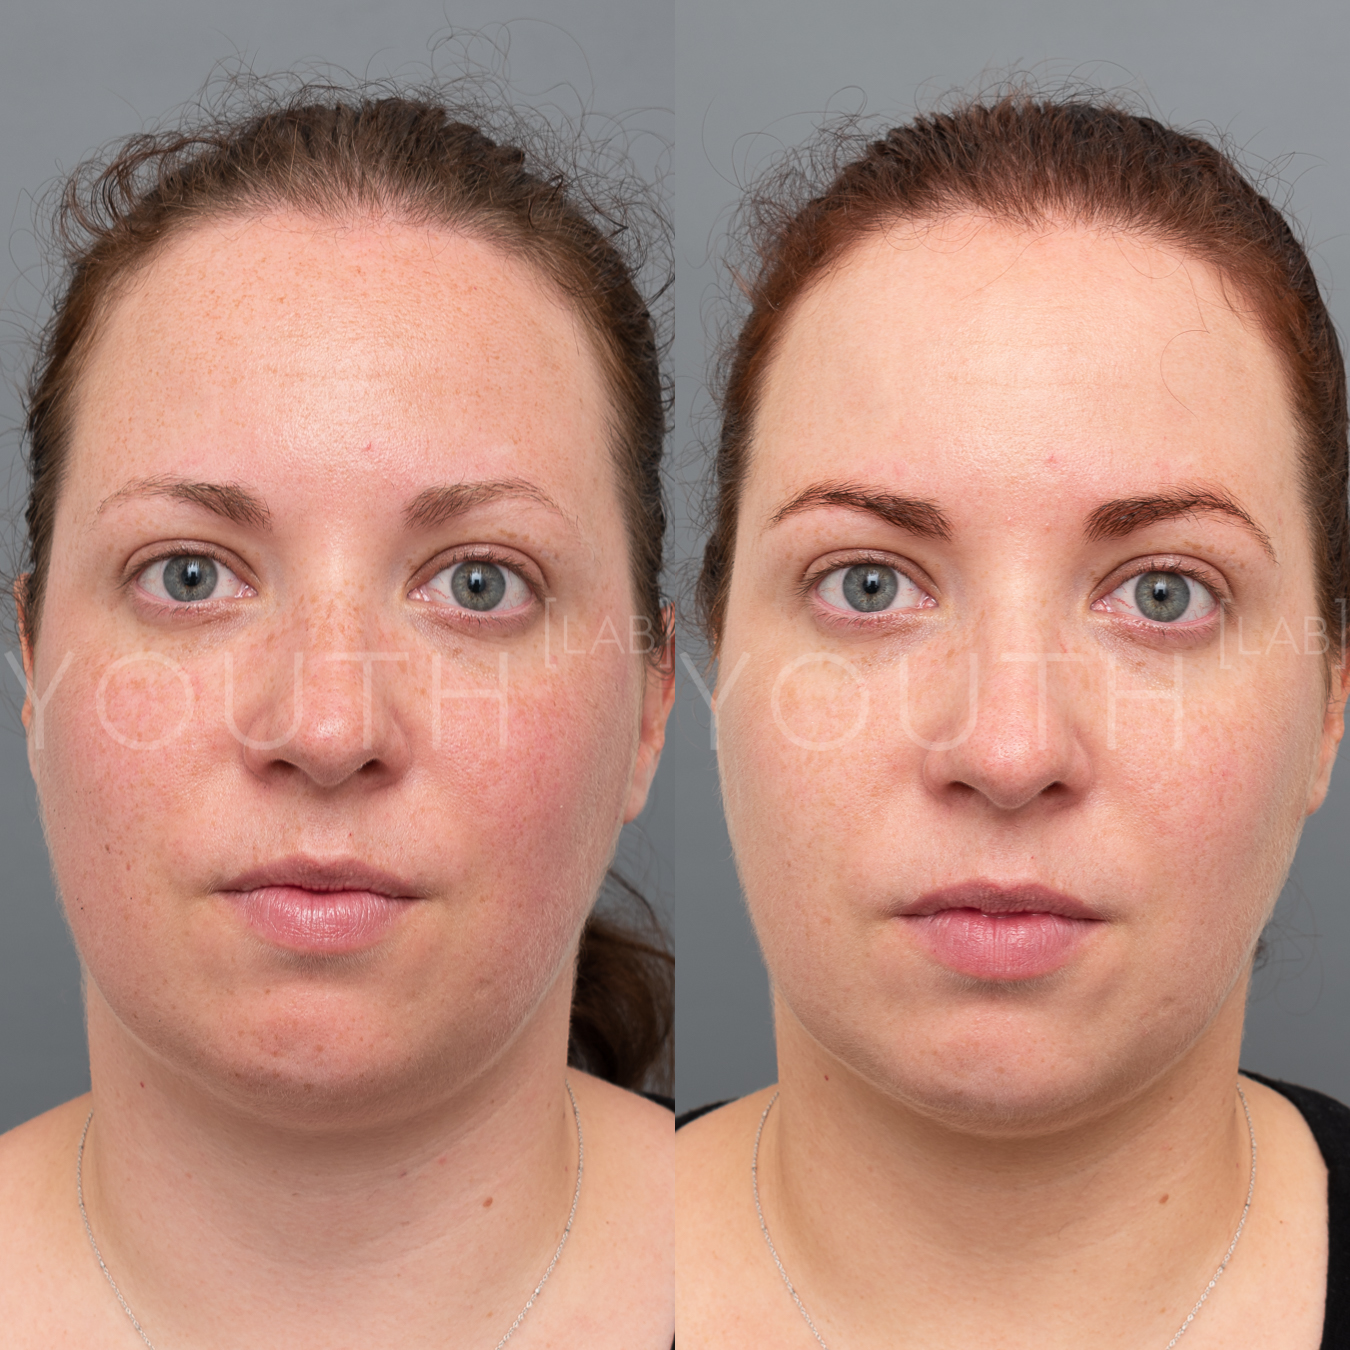 Treatment:  2 x BBL Photorejuvenation + 2 x Hydrafacials  Targeting:  Redness + Slight Congestion  Photo Filter:  No Filter  Result:  Reduction in redness and light sun damage, resulting in lighter and smoother skin tone.